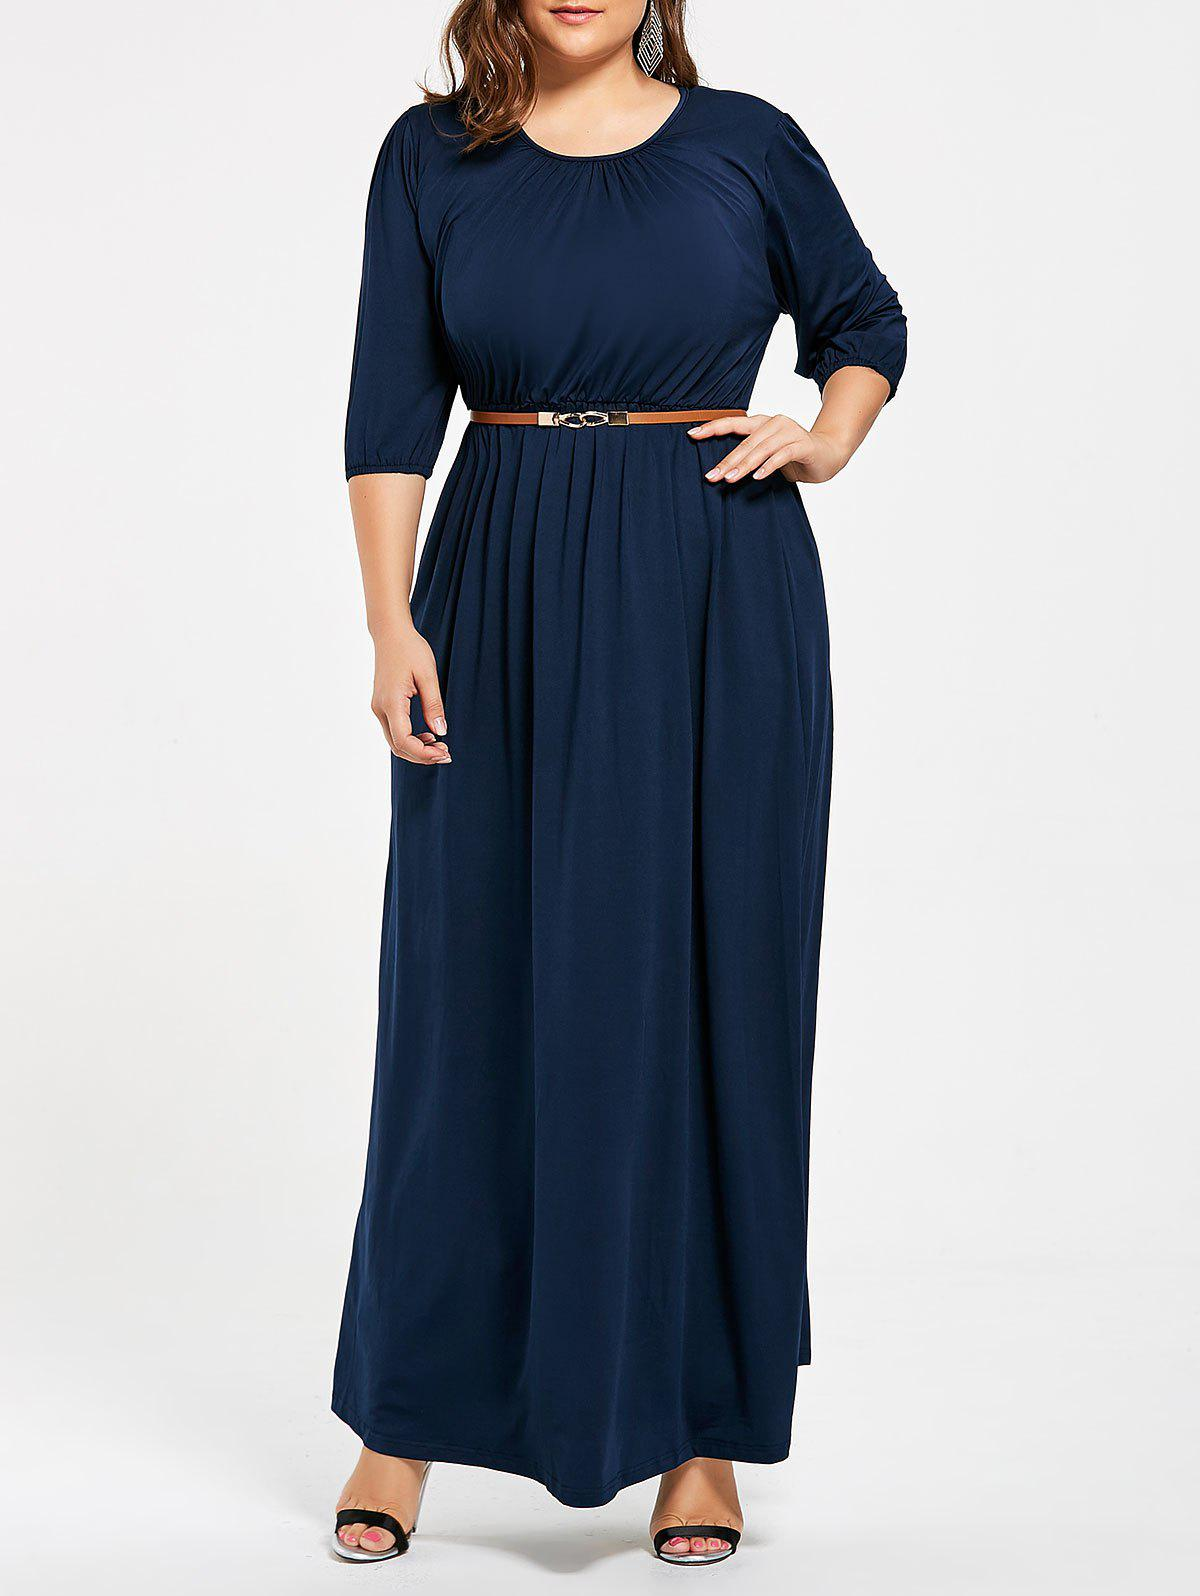 Ruched Plus Size Maxi Party Dress with BeltWOMEN<br><br>Size: 2XL; Color: CERULEAN; Style: Brief; Material: Cotton Blend,Polyester; Silhouette: A-Line; Dresses Length: Floor-Length; Neckline: Scoop Neck; Sleeve Length: 3/4 Length Sleeves; Waist: High Waisted; Pattern Type: Solid Color; With Belt: Yes; Season: Fall,Spring; Weight: 0.5500kg; Package Contents: 1 x Dress 1 x Belt;